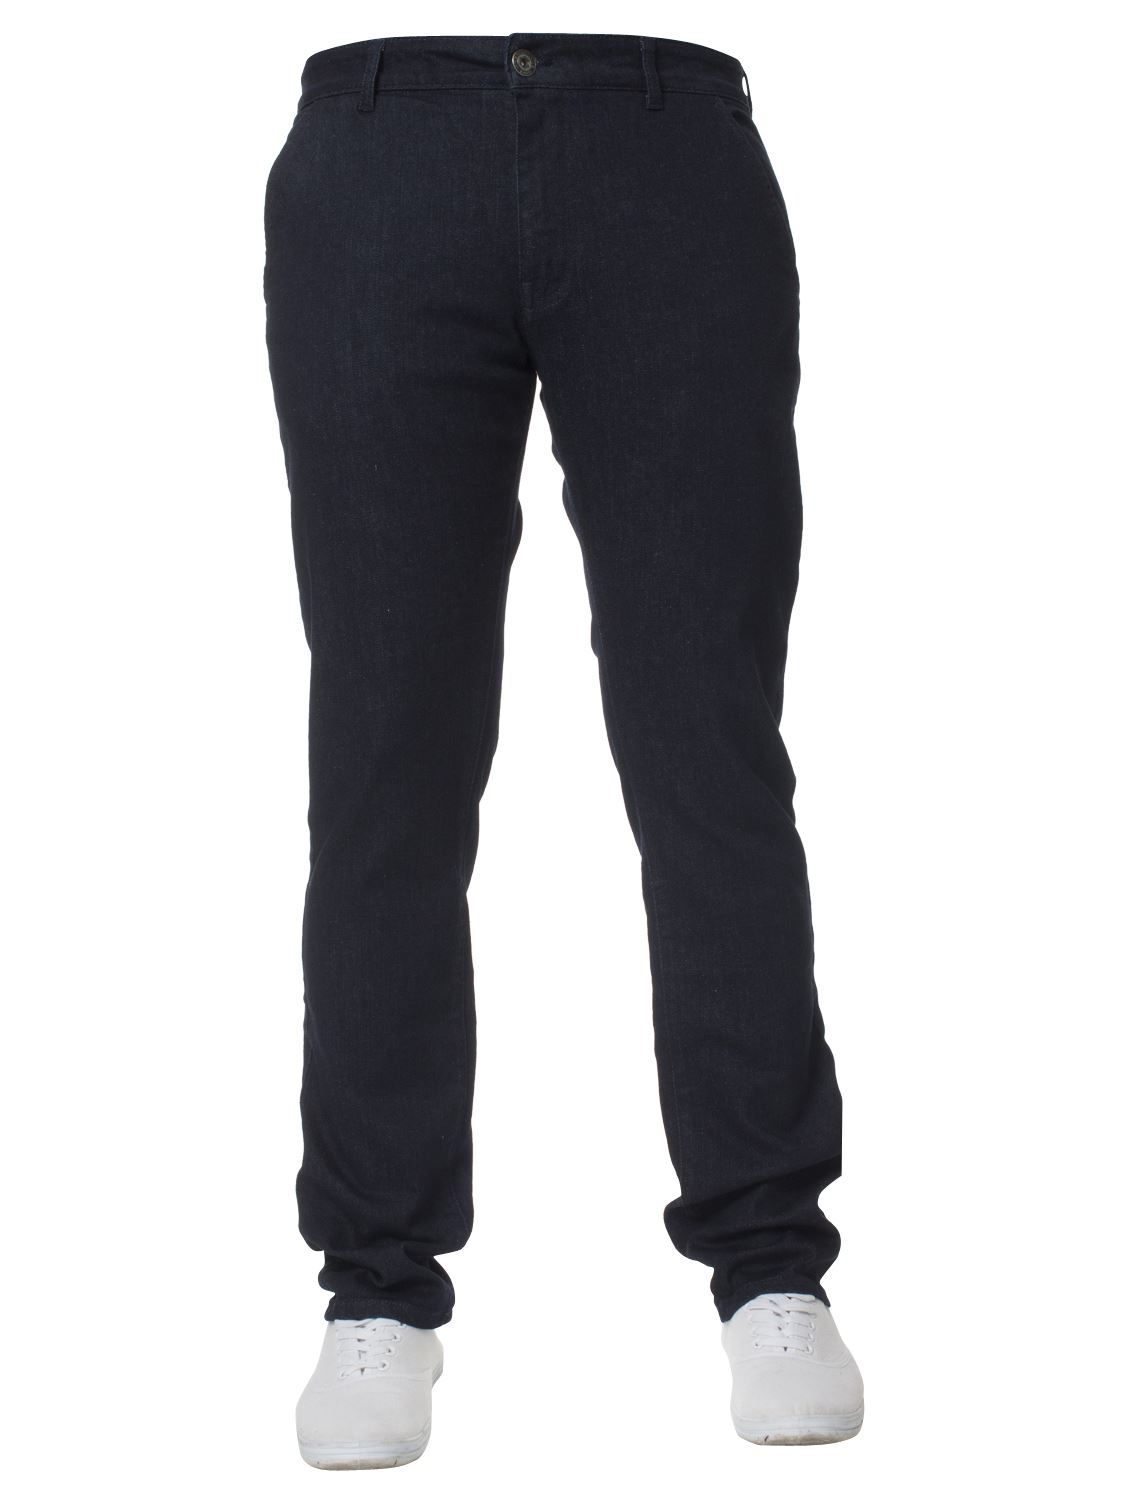 New-Mens-Enzo-Jeans-Denim-Chinos-Skinny-Slim-Fit-Super-Stretch-Trousers-Pants thumbnail 10